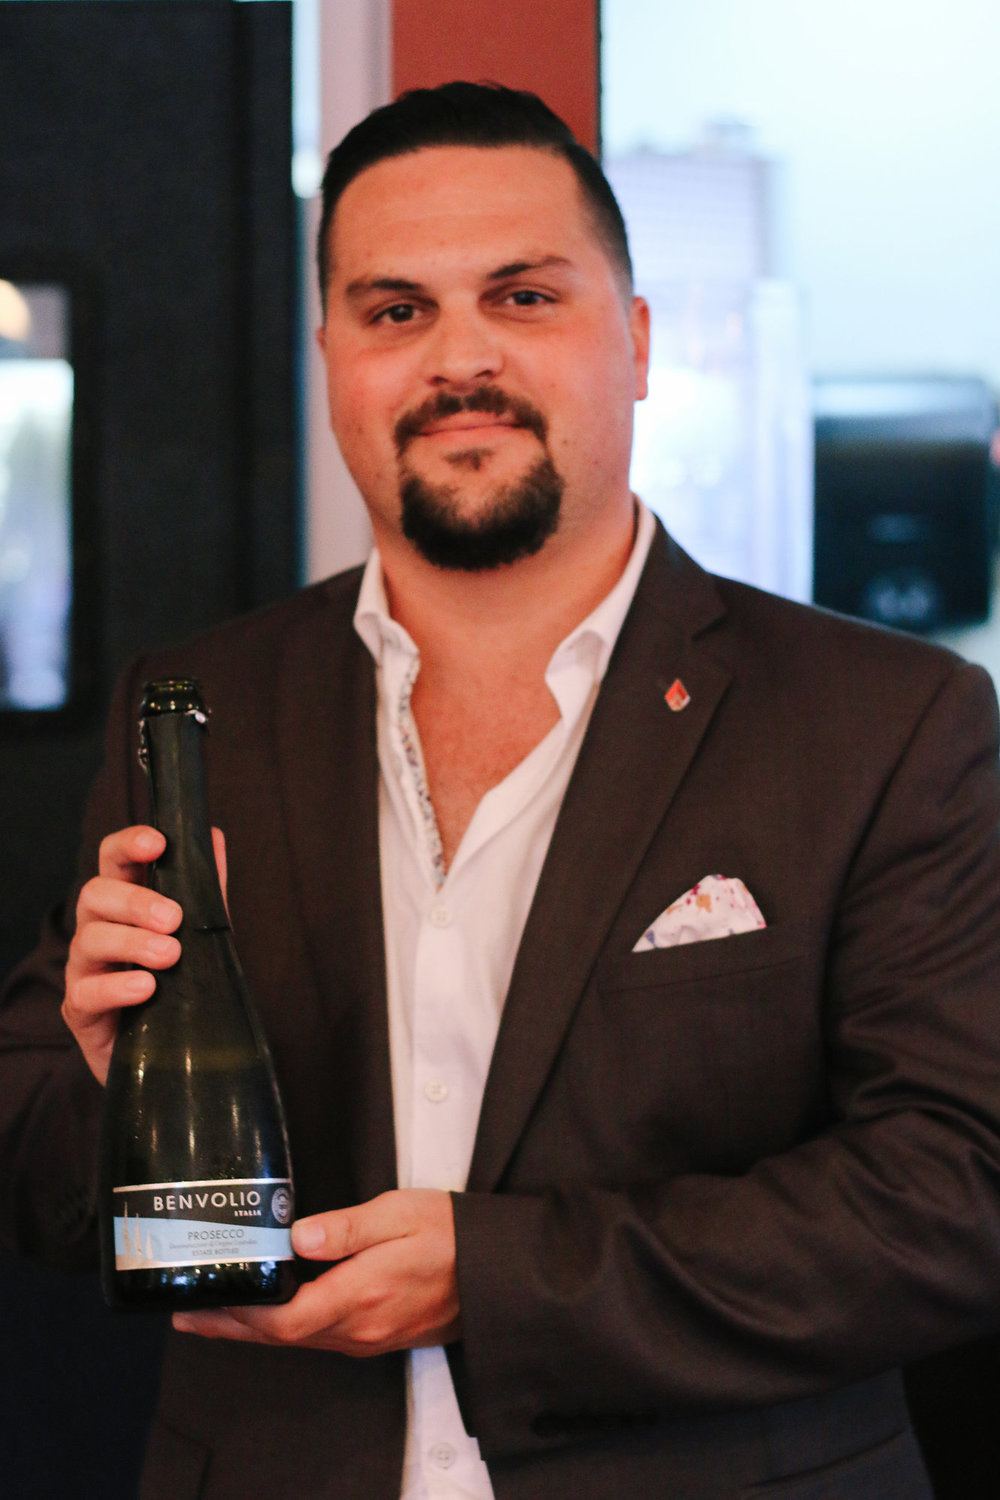 Pablo Suarez with The Wine Maverick